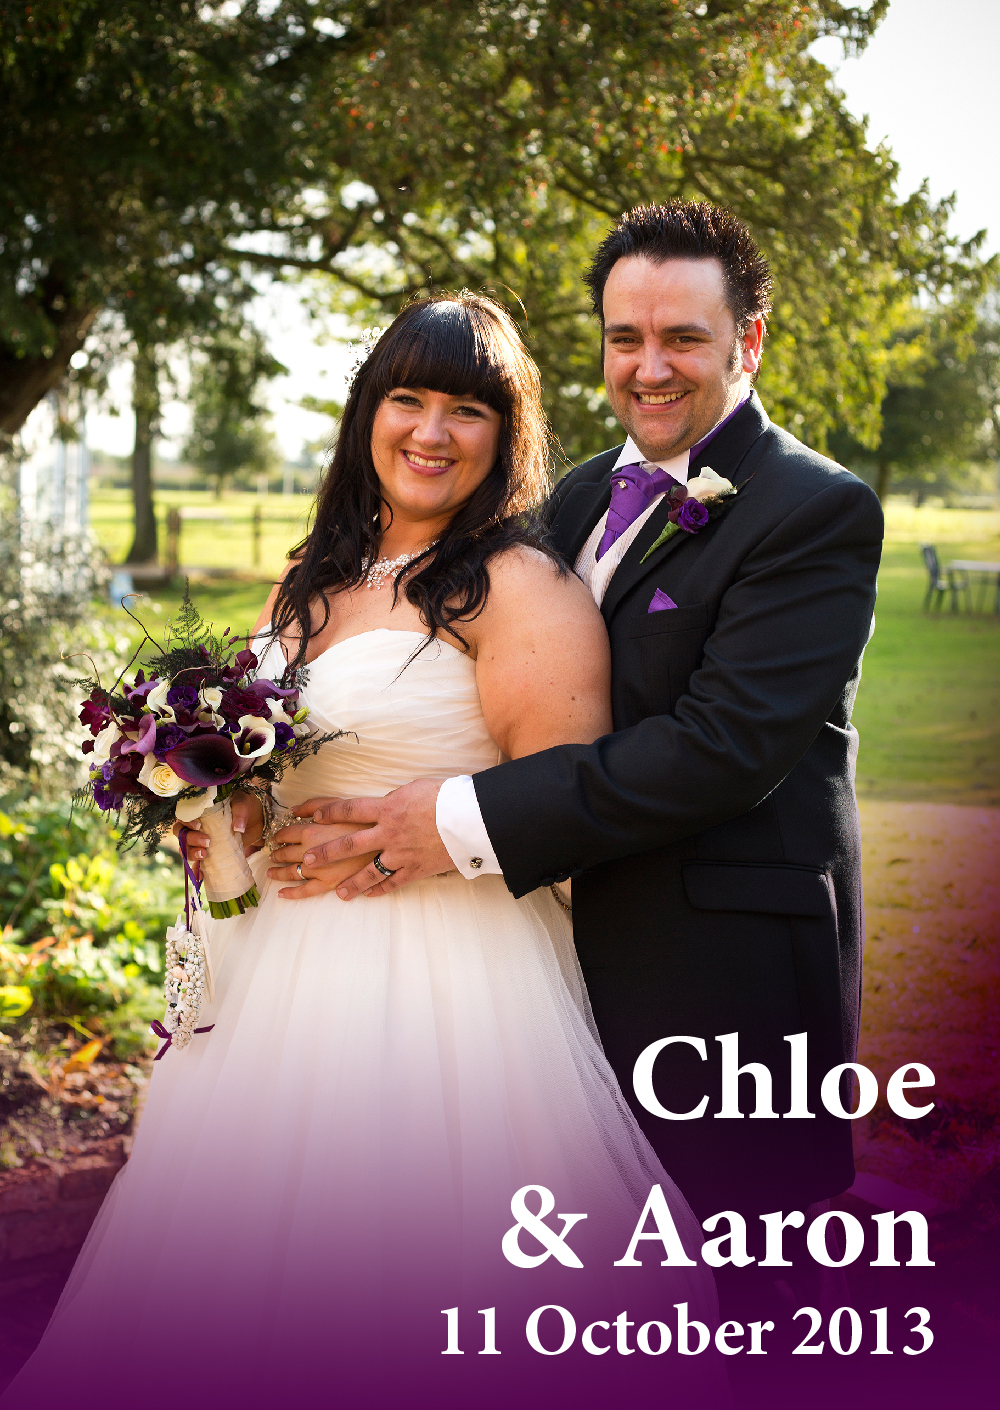 Chloe & Aaron's Wedding